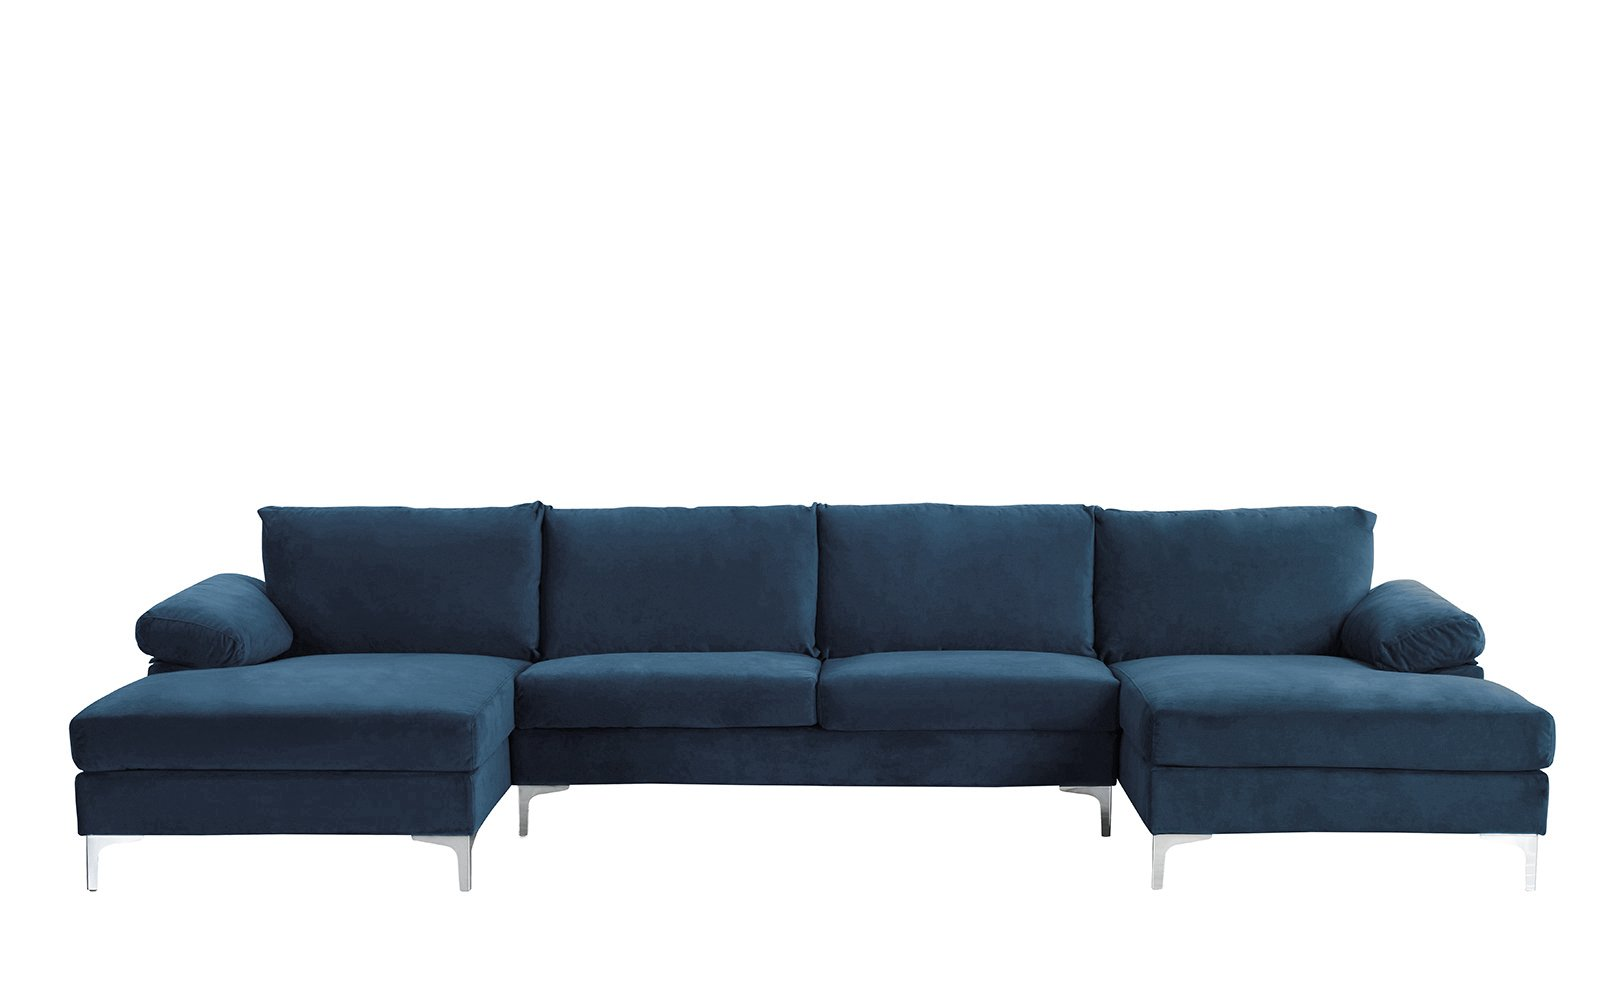 Phenomenal Details About Modern Large Velvet U Shape Sectional Sofa Double Extra Wide Chaise Lounge Navy Inzonedesignstudio Interior Chair Design Inzonedesignstudiocom